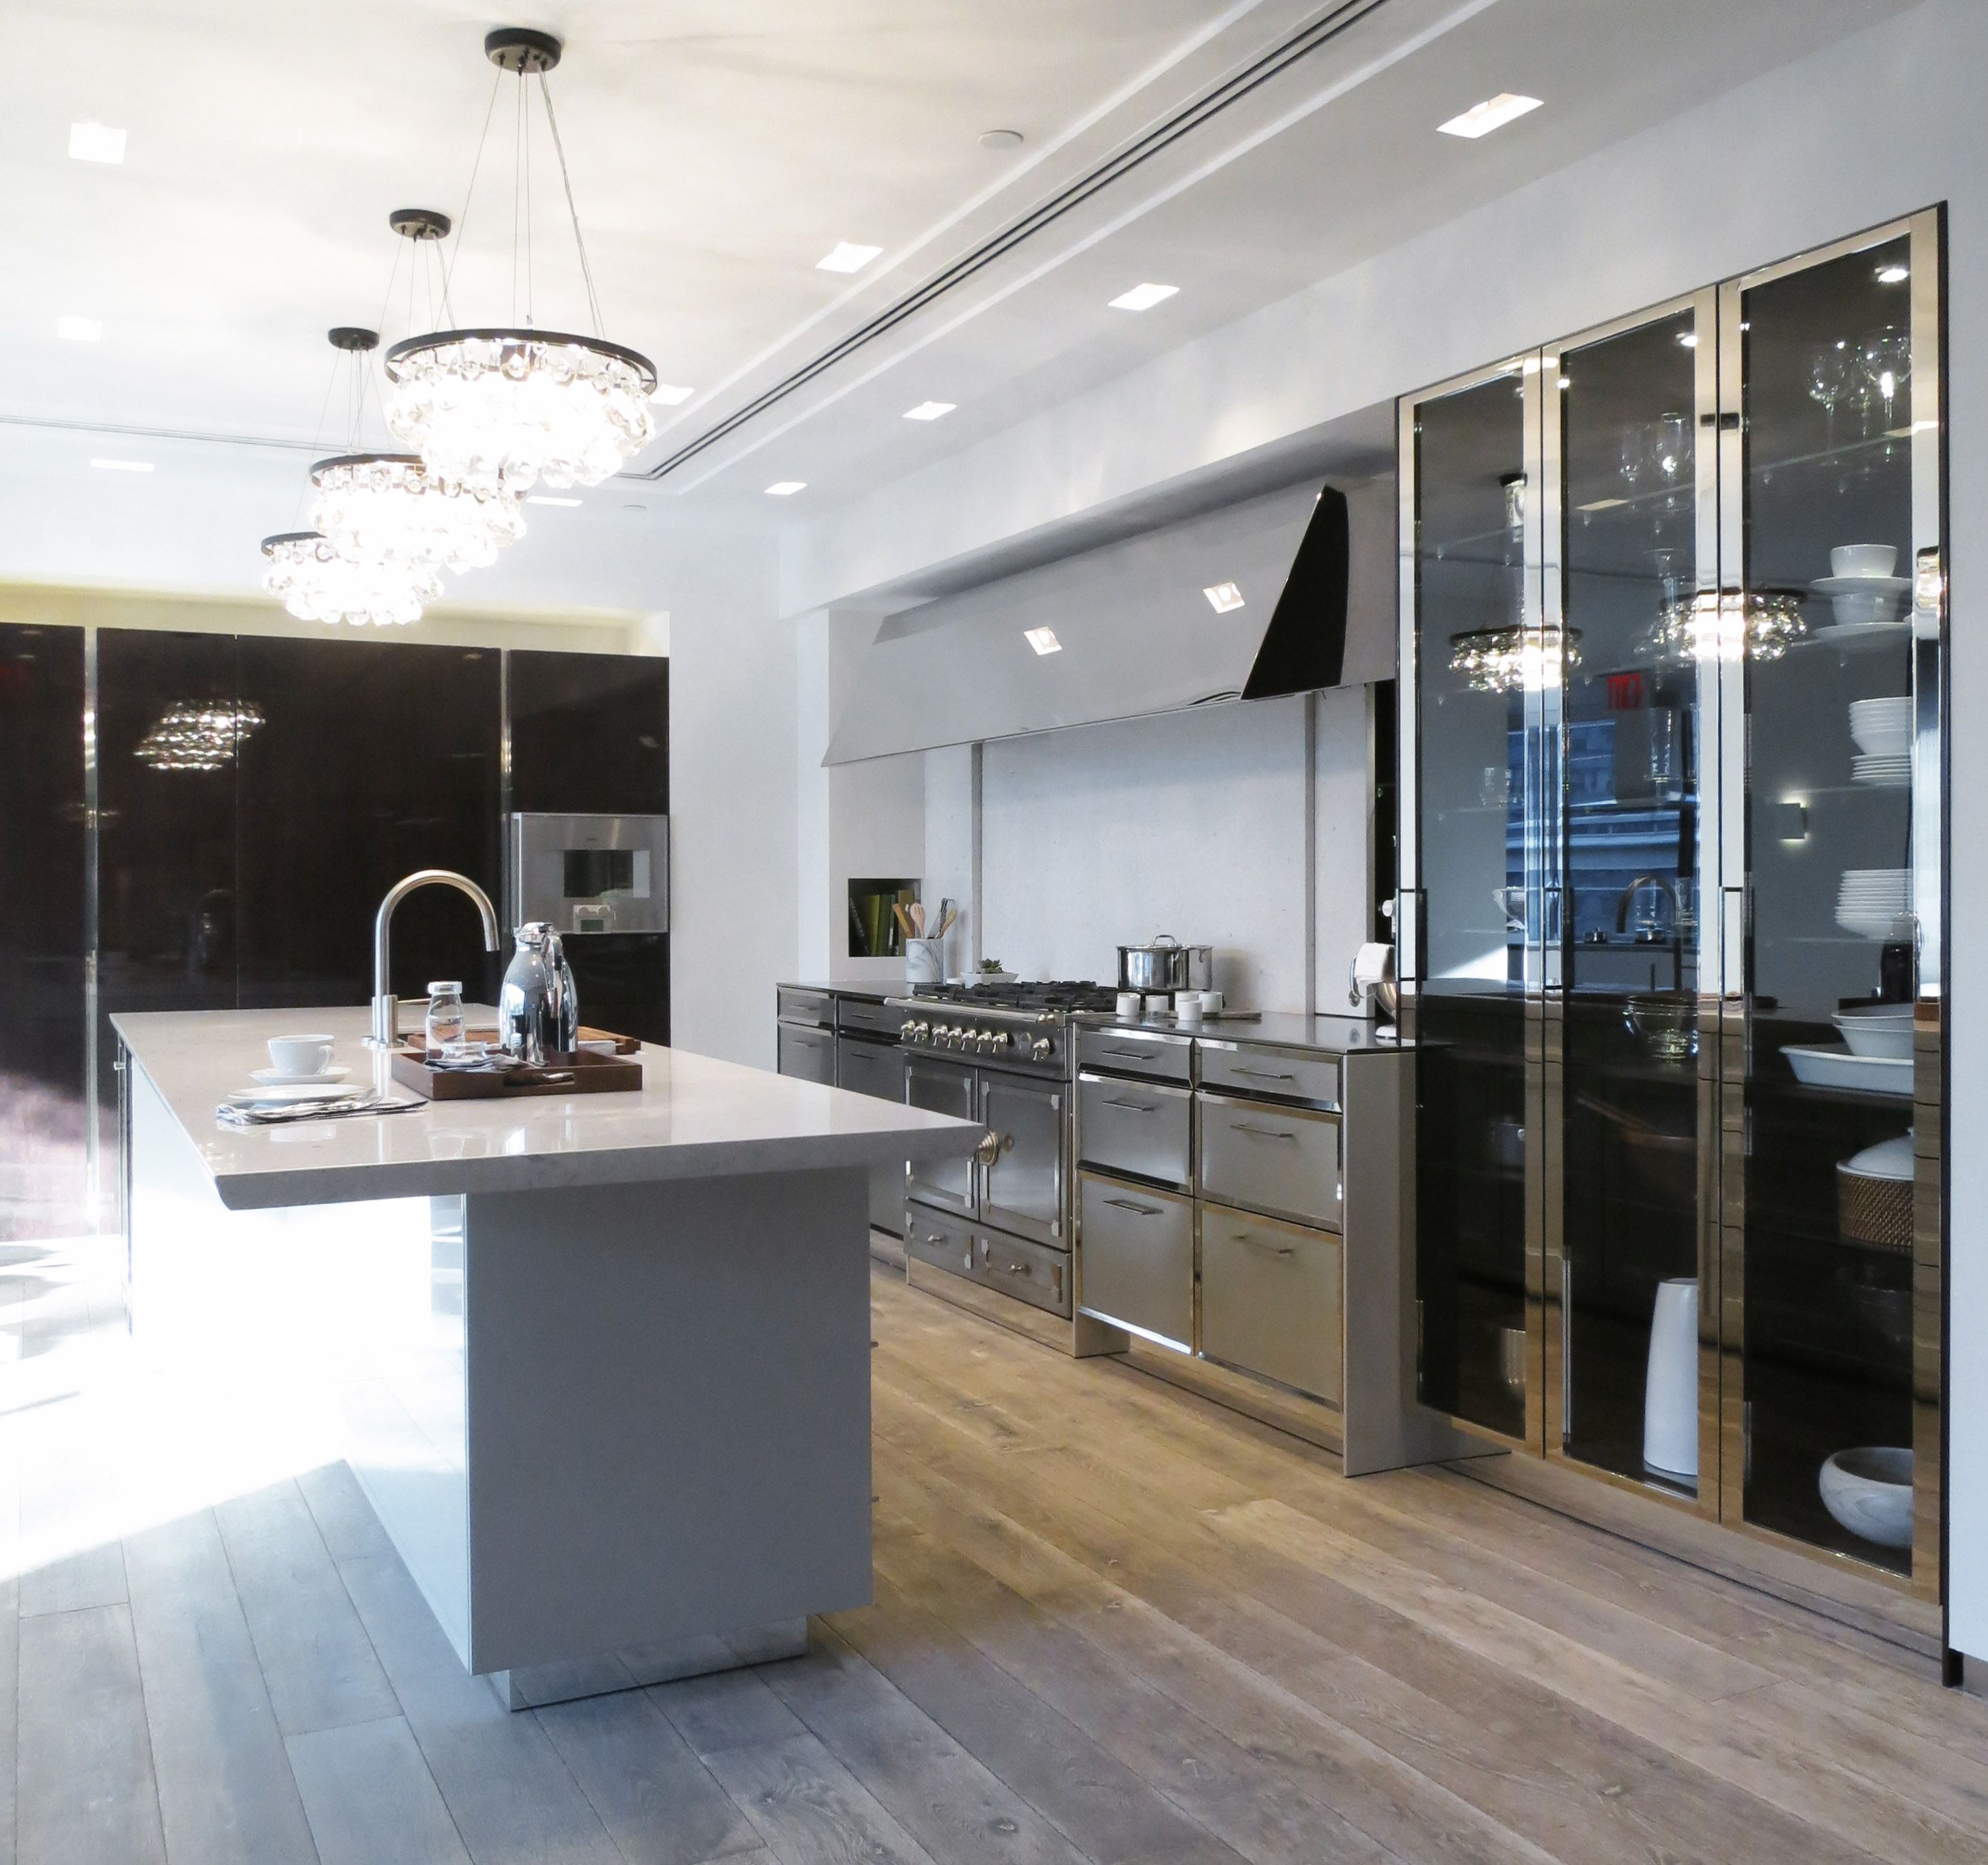 A Beautiful Example Of The BeauxArts.02 Range In SieMaticu0027s New York  Showroom   SieMatic Beaux Arts .02   Pinterest   Showroom, Stools And  Kitchens